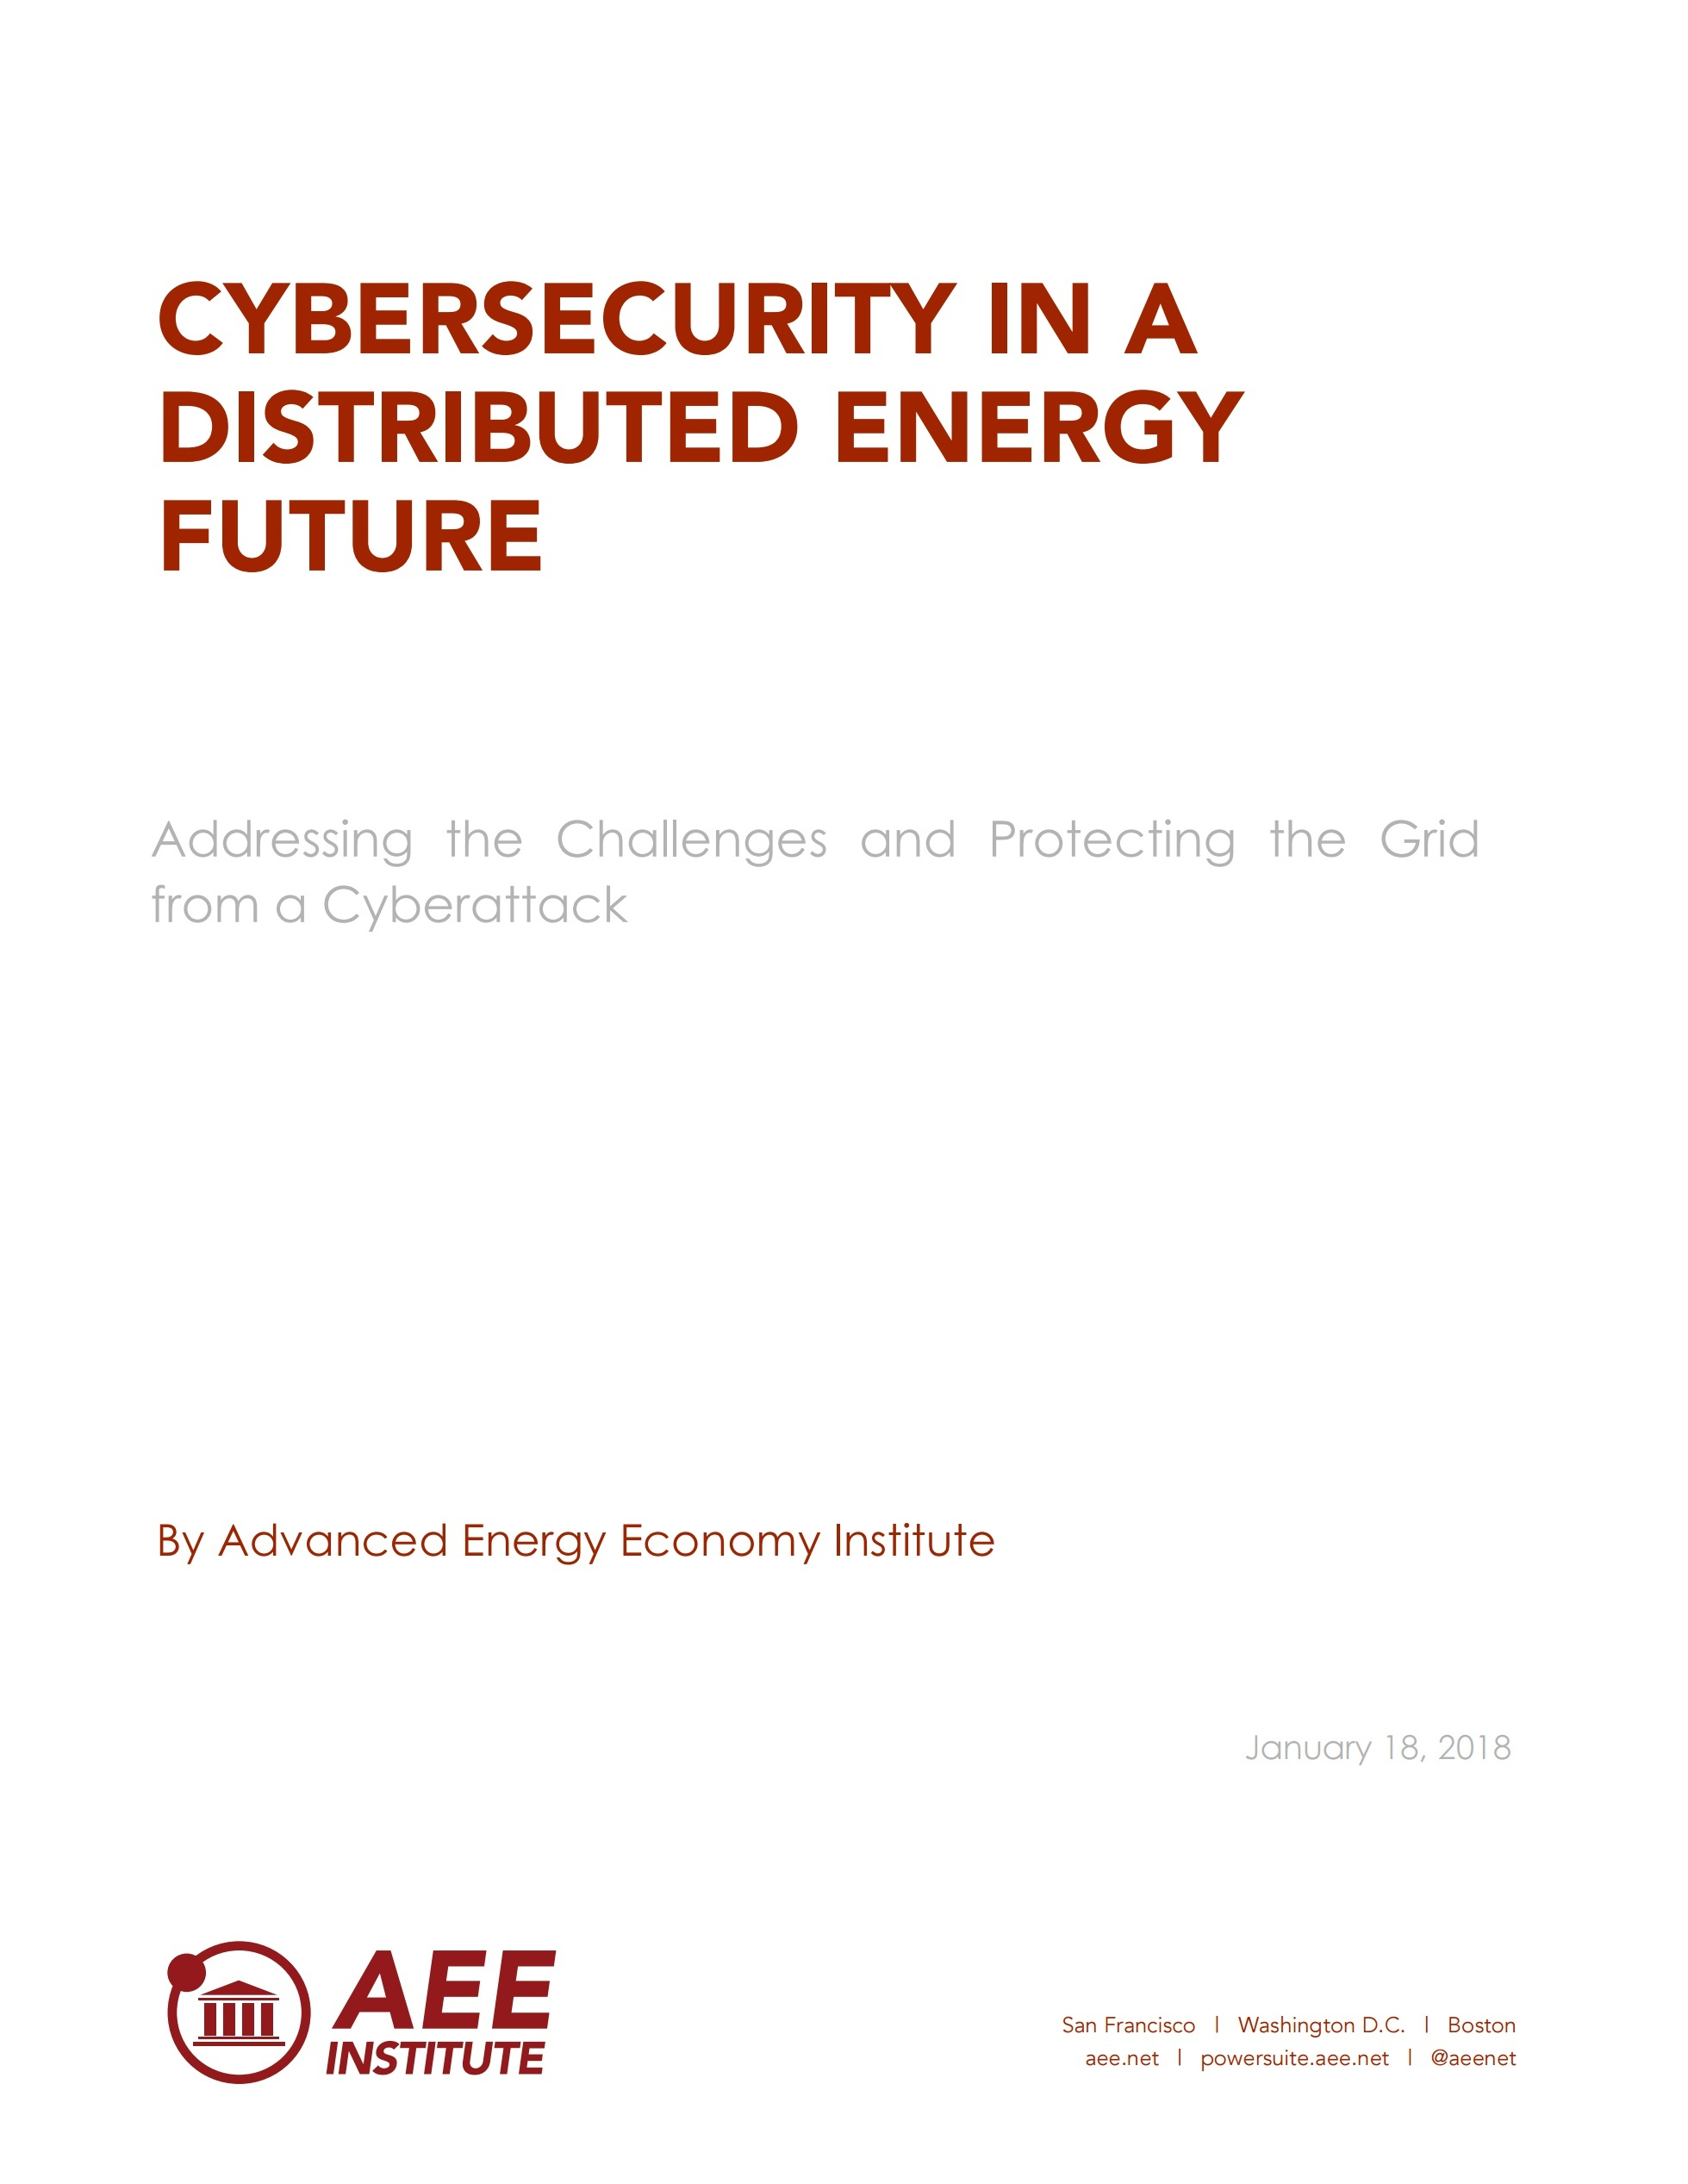 Cover_Cybersecurity_1.18.18.jpg